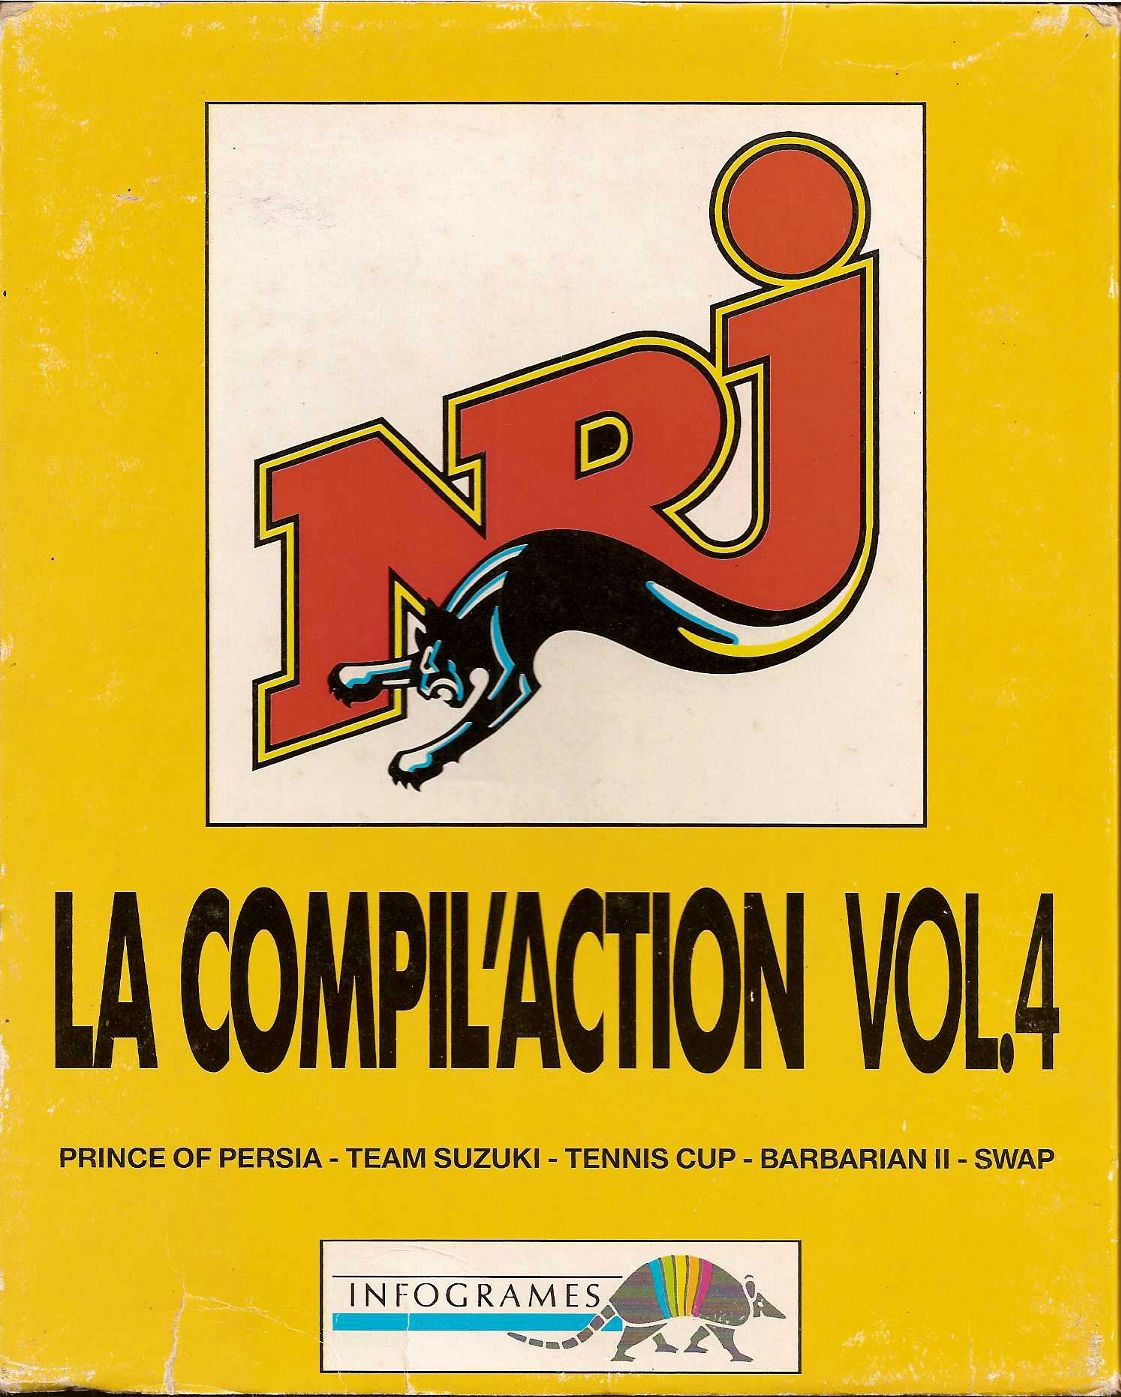 image : NRJ : la compil'action vol. 4